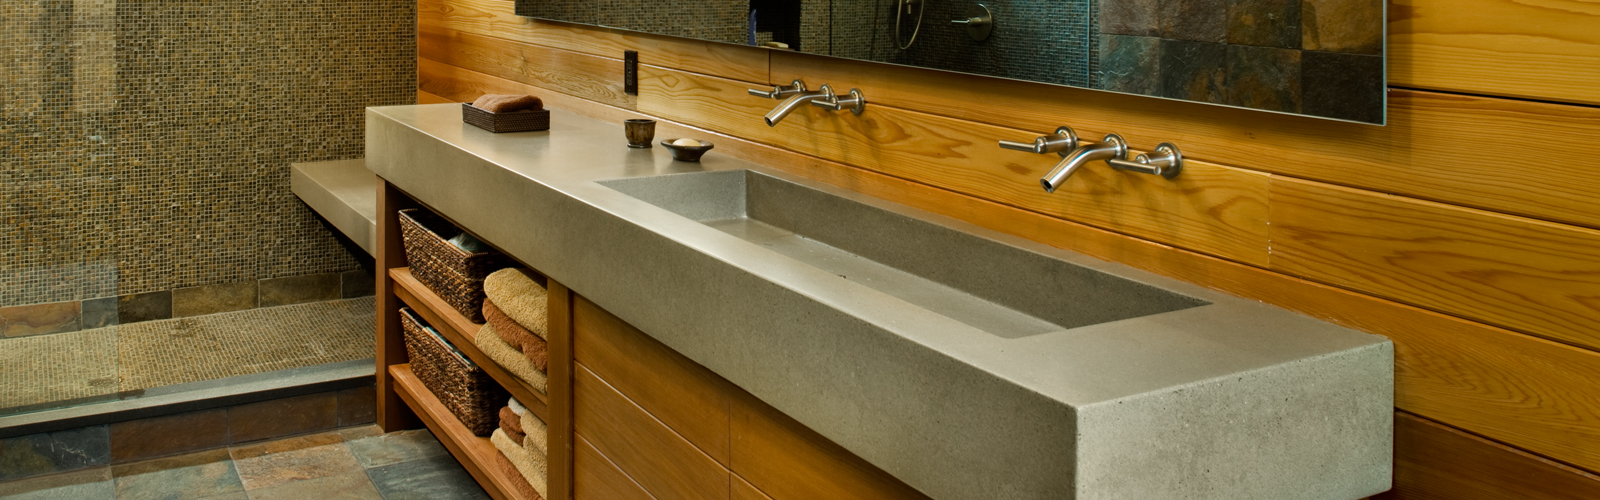 Single bathroom sink with two faucets - Concrete Sinks Nyc